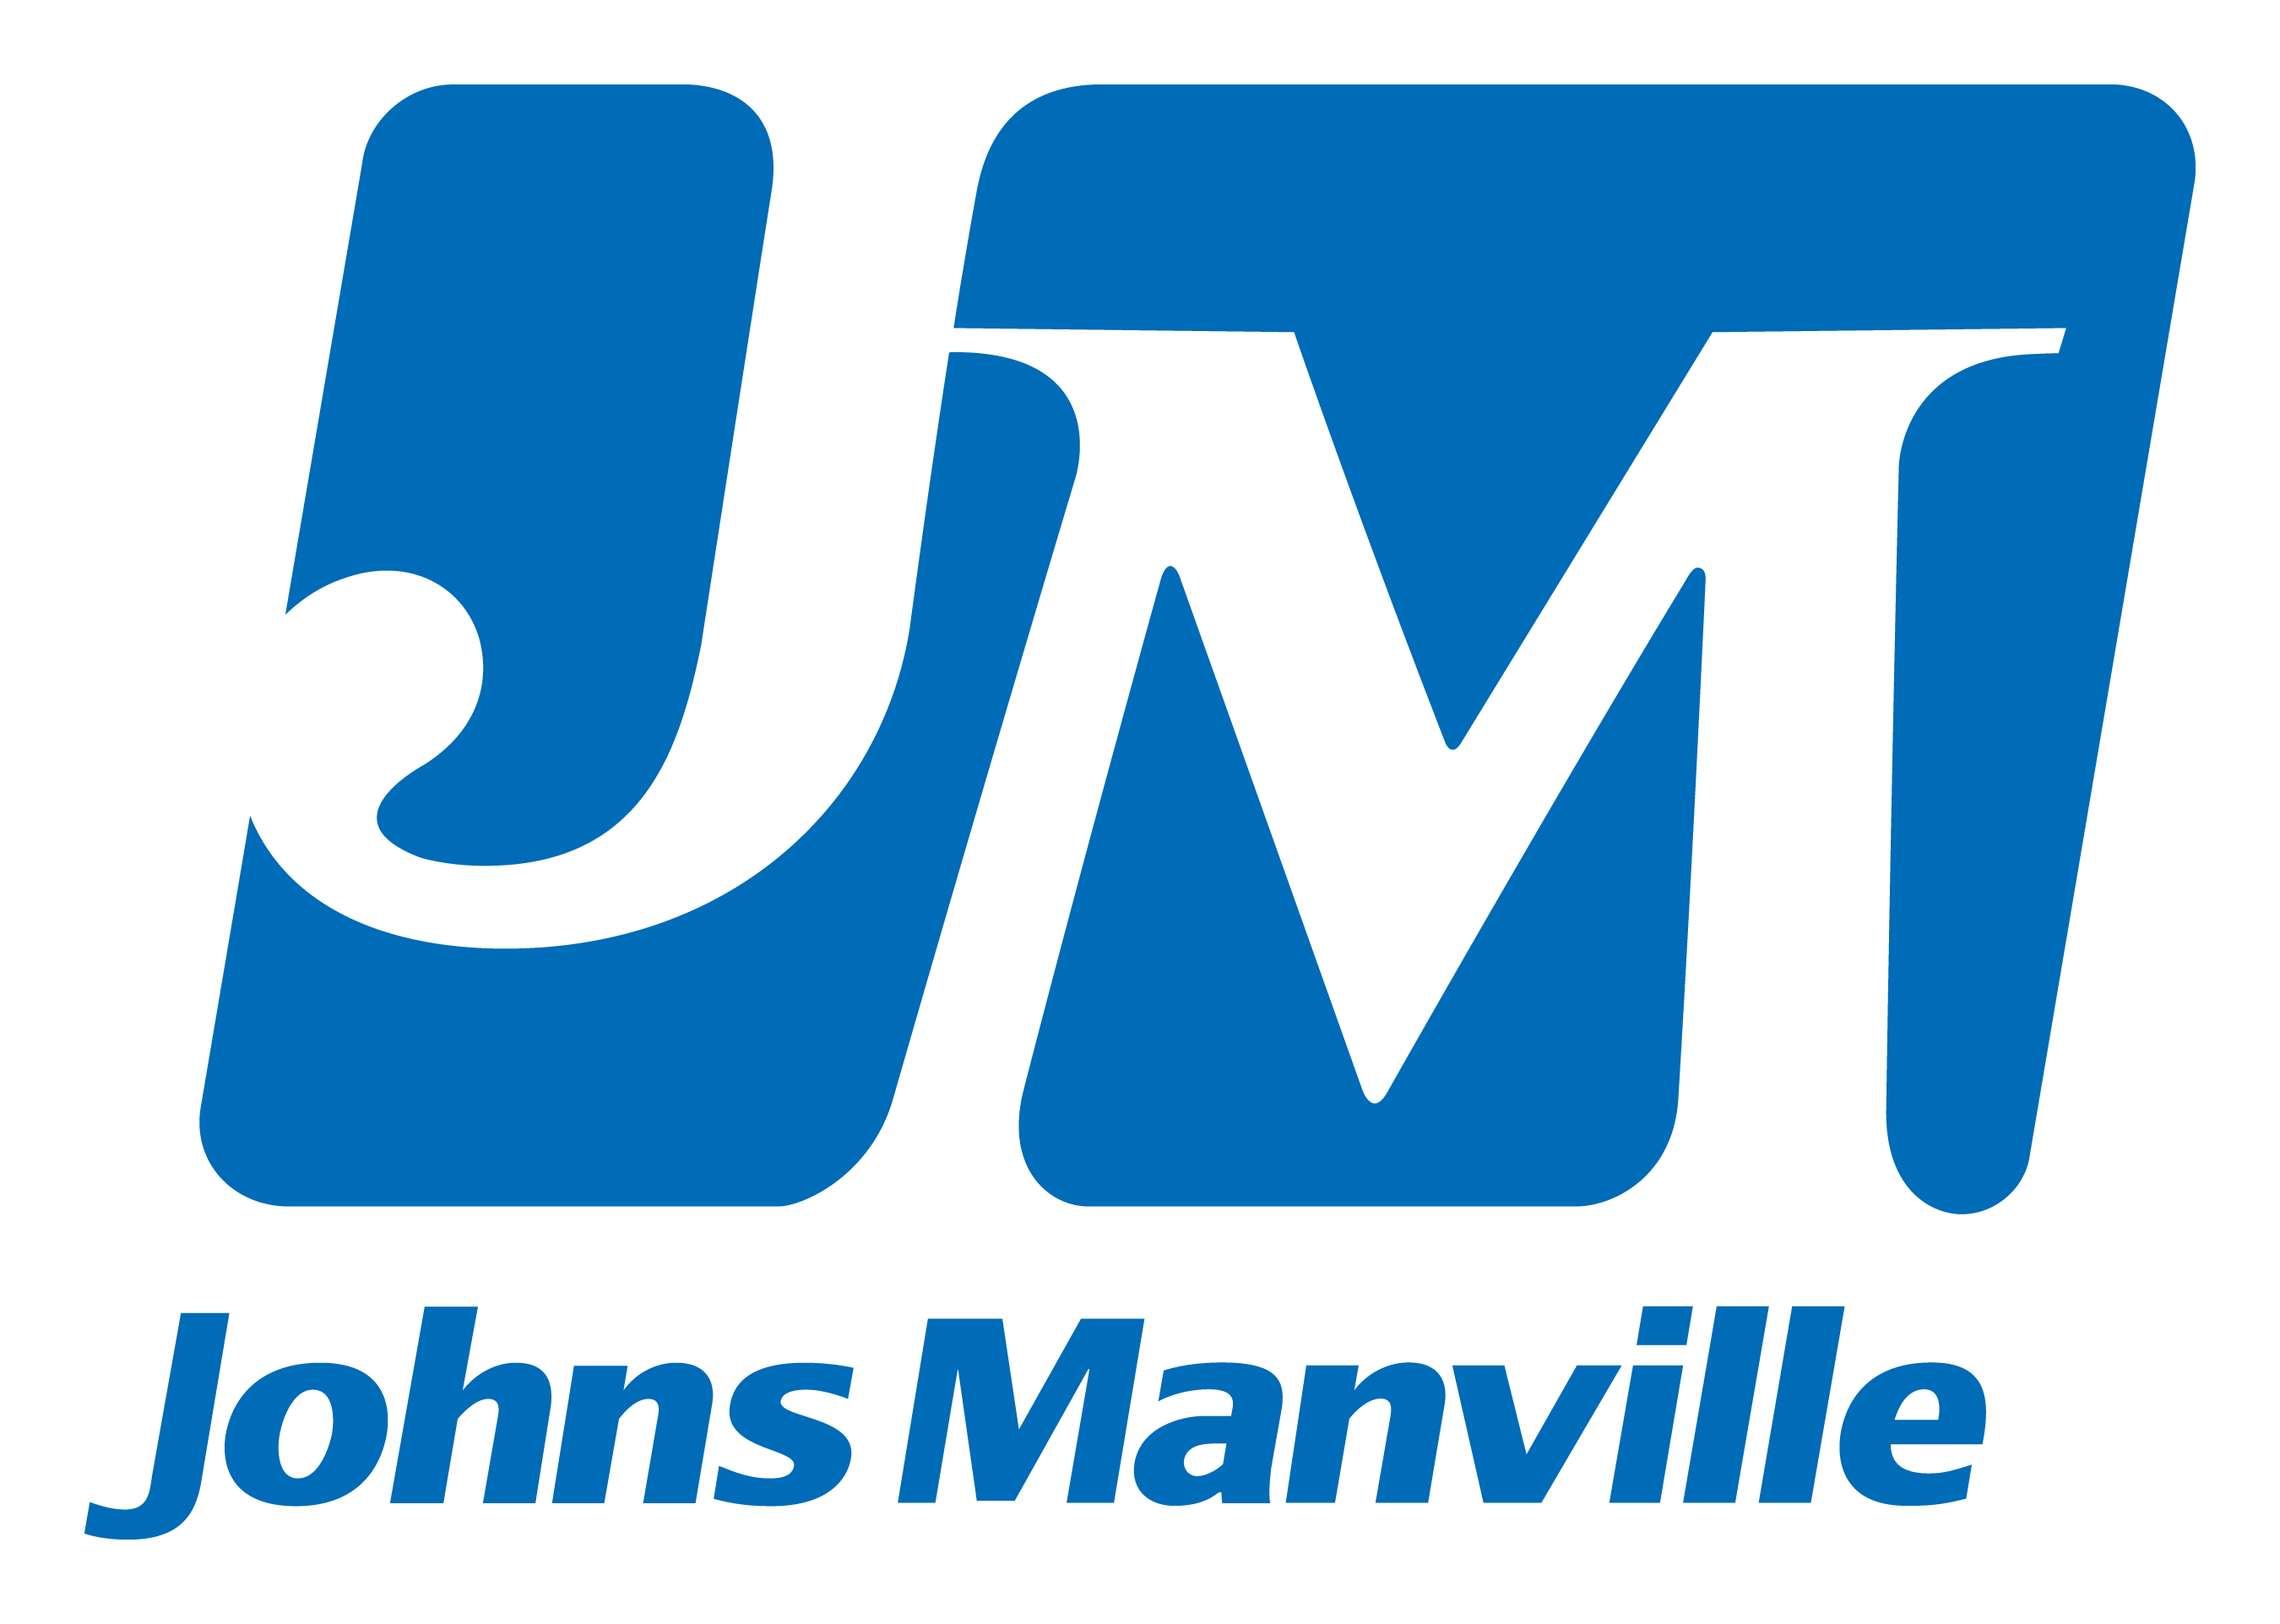 Johns Manville logo big